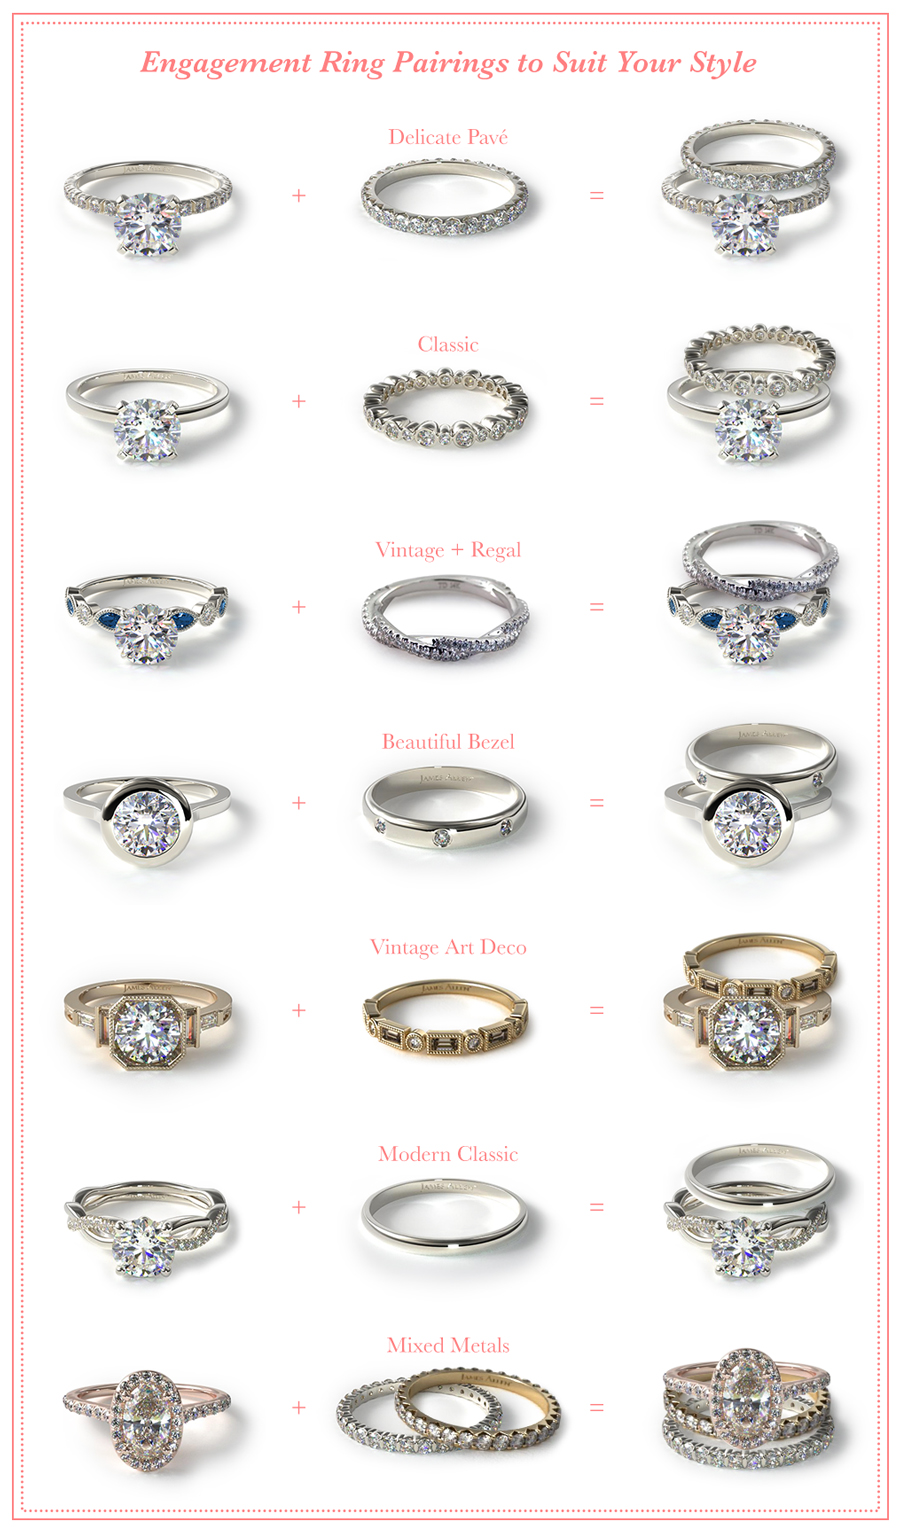 Engagement rings and wedding ring pairs